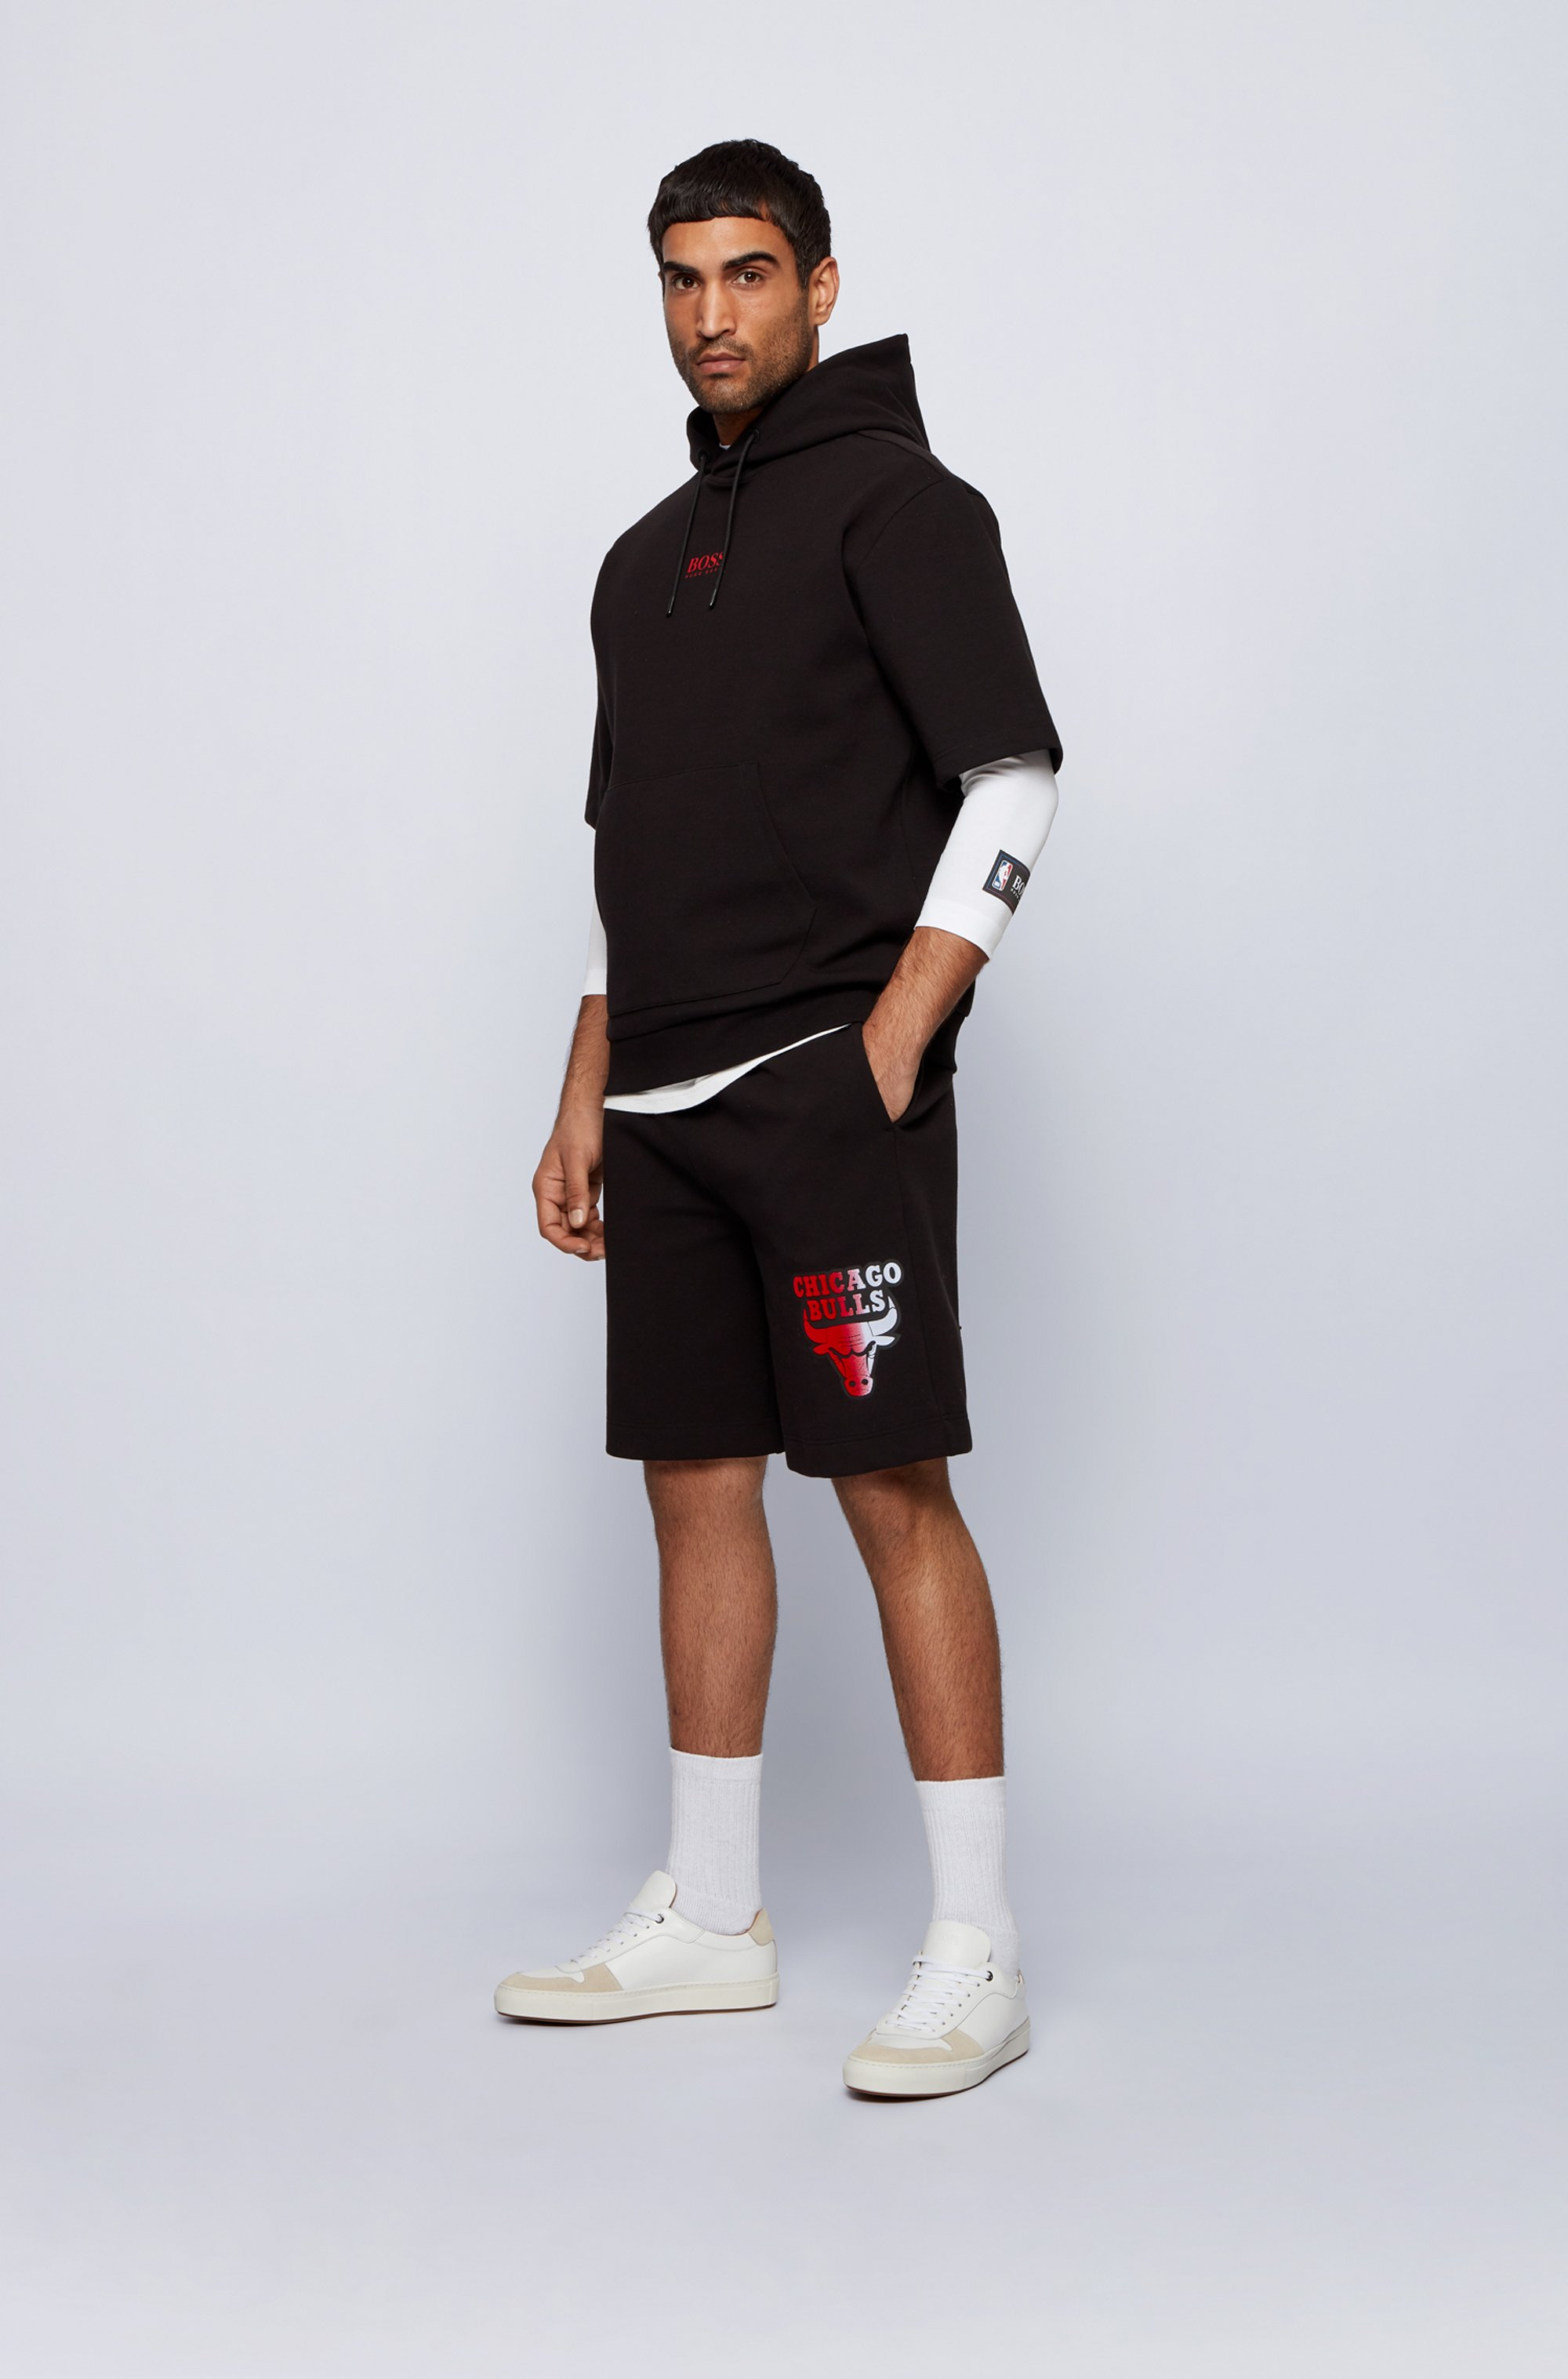 Long-sleeved T-shirt from BOSS x NBA with team logo